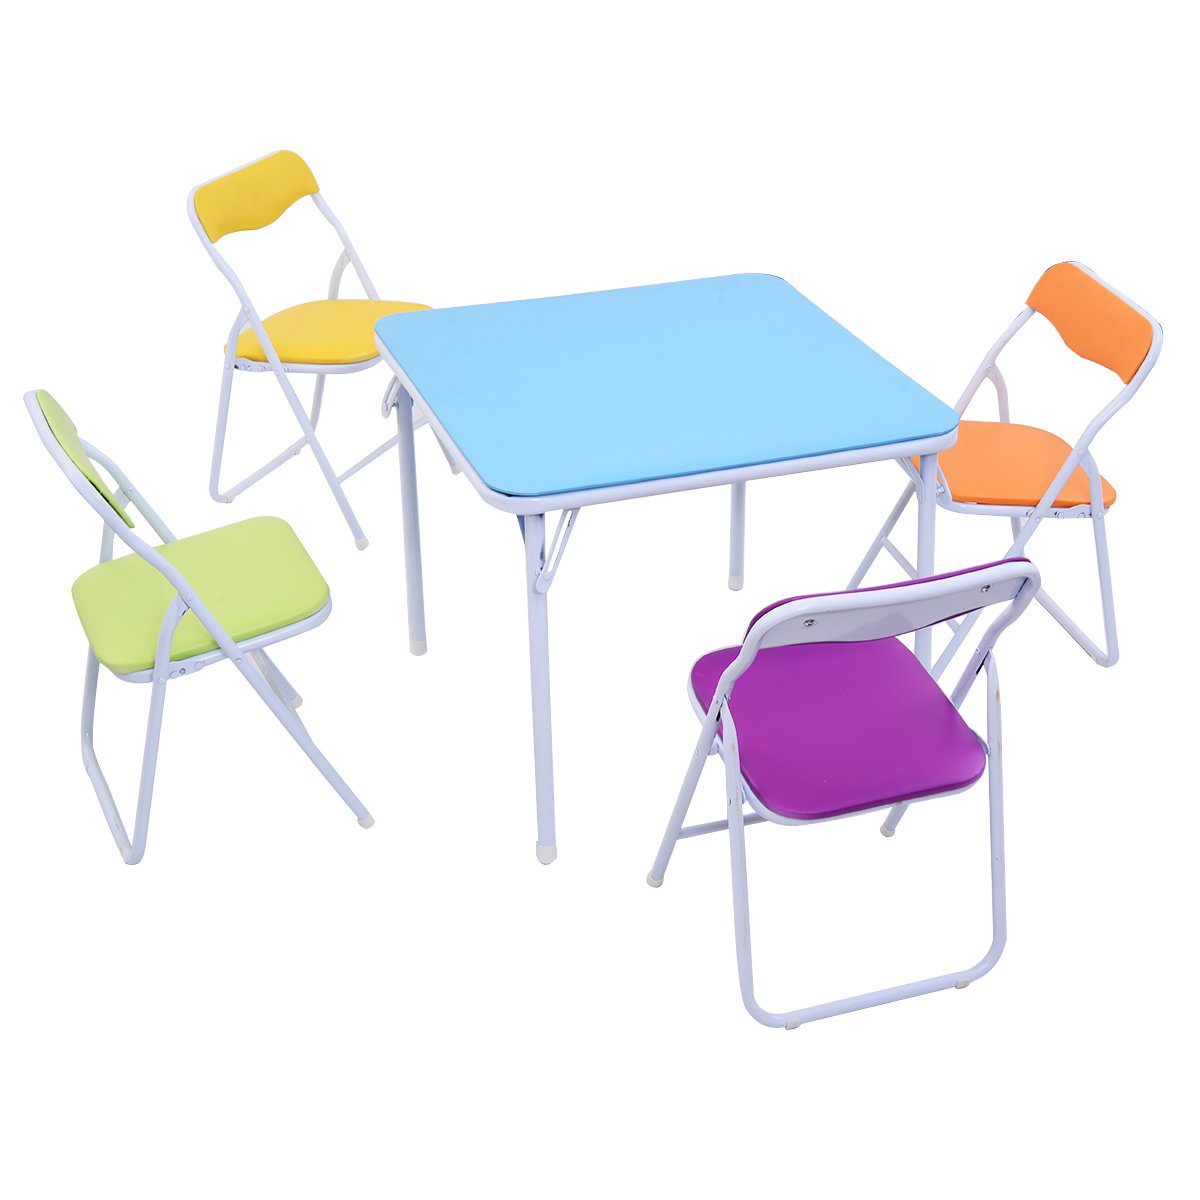 Costzon Kids Table and Chair Set, 5 Piece Colorful Folding Portable Activity Table Set, Steel Lightweight Compact Indoor Set with Bright Color for Toddlers, Girls by Costzon